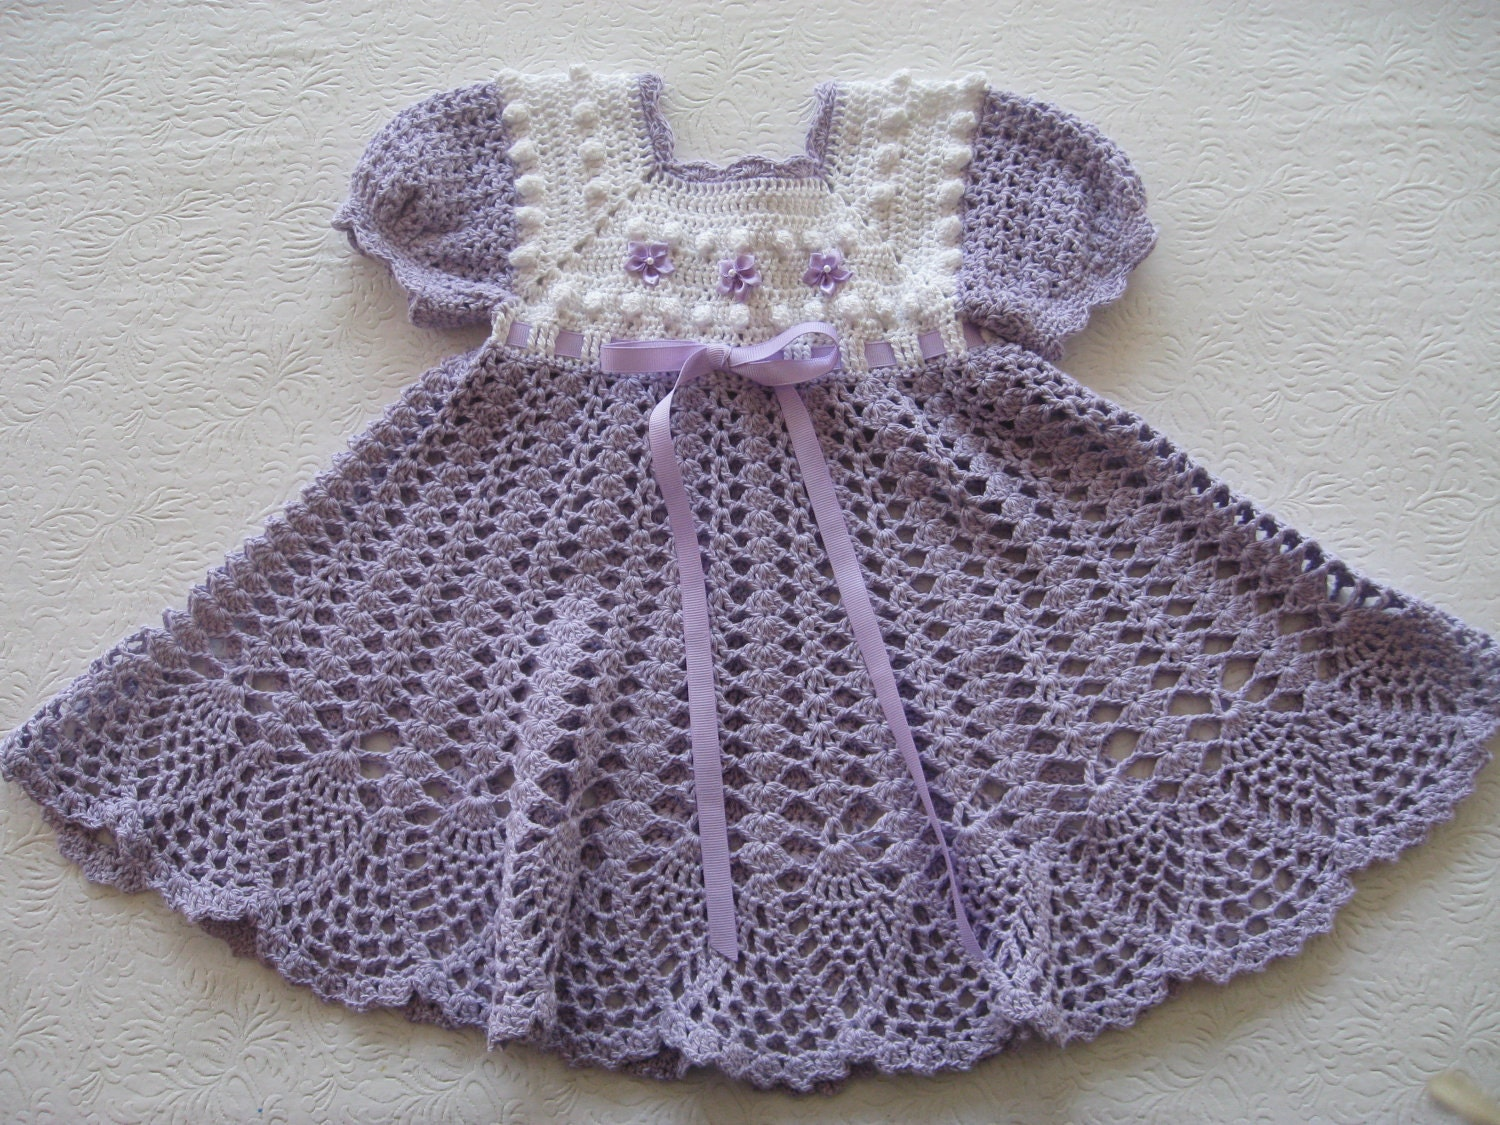 Crochet Stitches For Dresses : Crochet Pattern for Baby Girl Dress PDF by ThePatternParadise